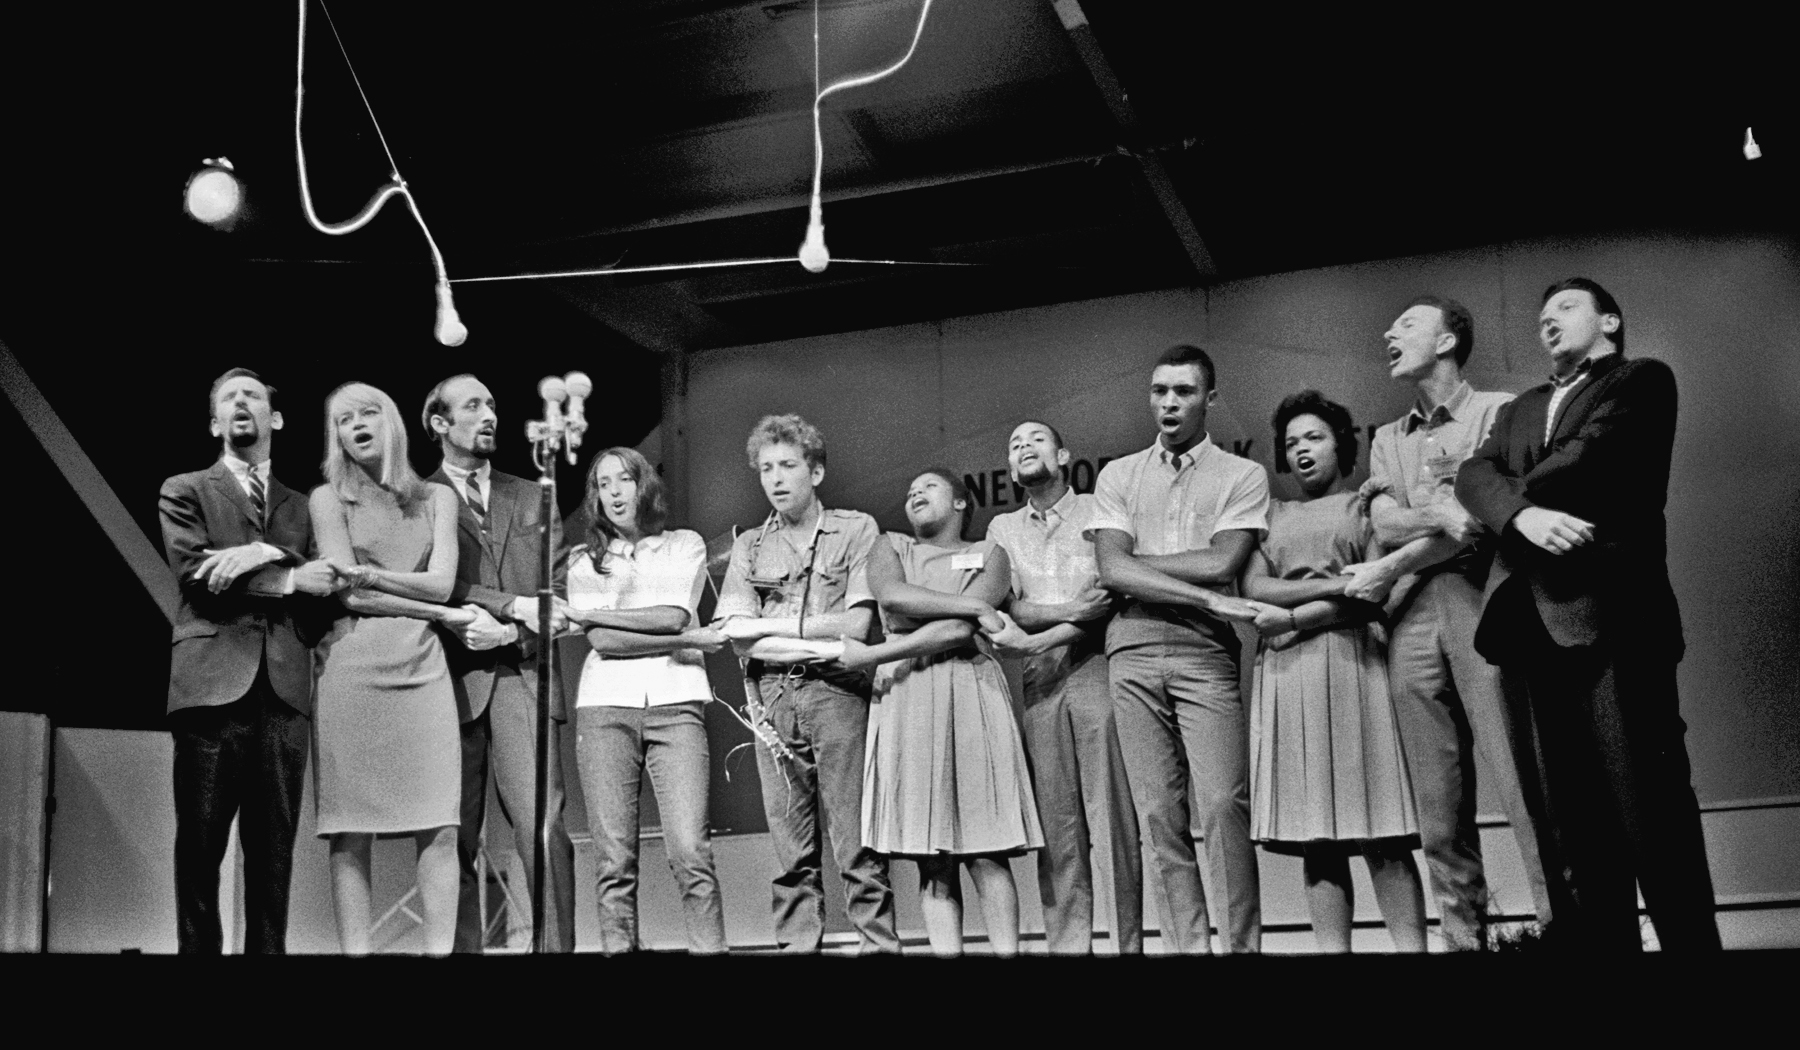 """Peter, Paul, and Mary, Joan Baez, Bob Dylan, the Freedom Singers, Pete Seeger, and Theodore Bikel sing """"We Shall Overcome"""" in 1963."""